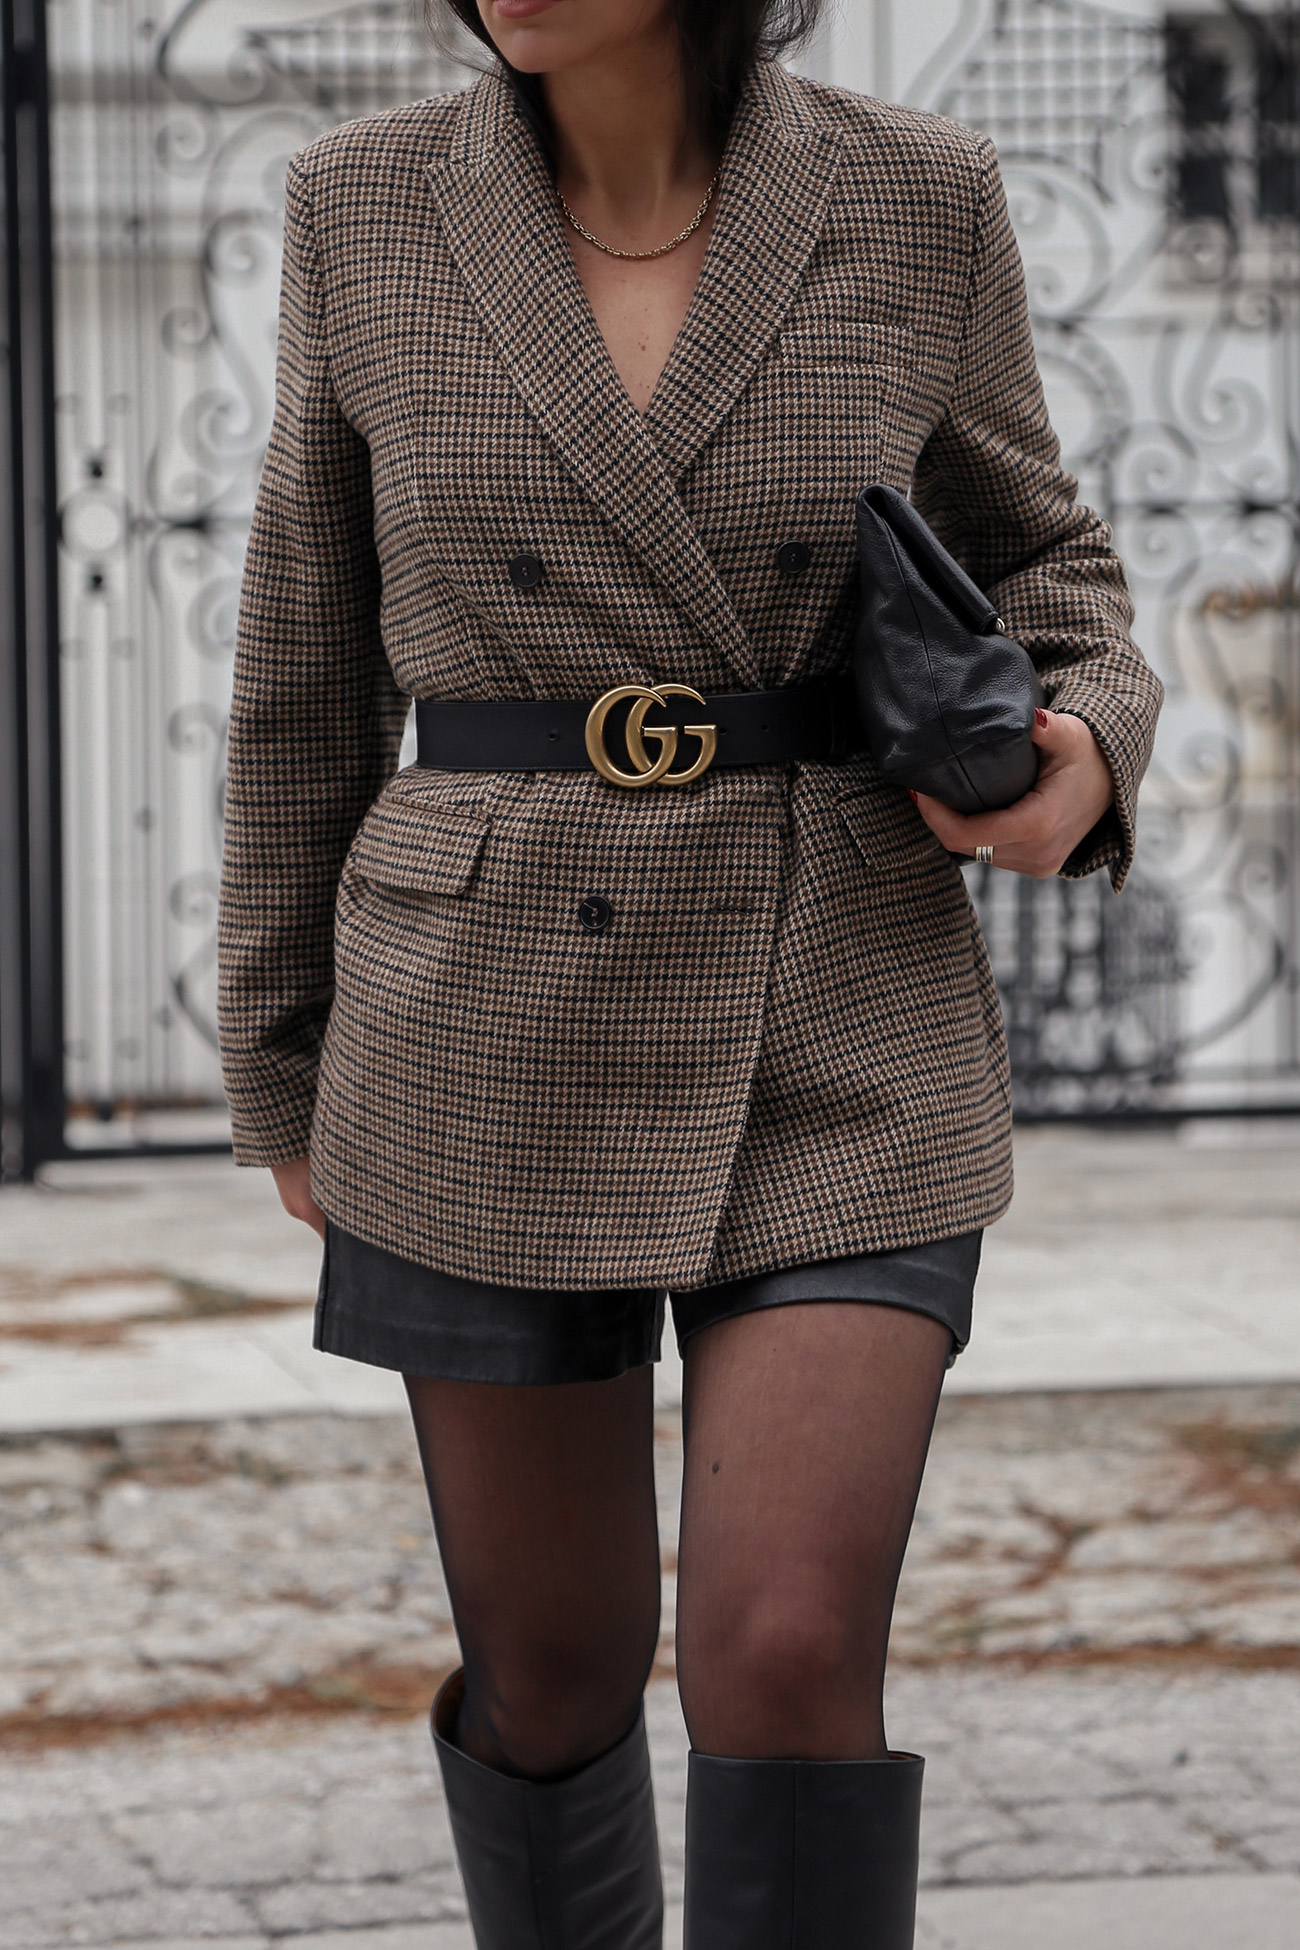 plaid blazer worn with Gucci monogram belt and shorts